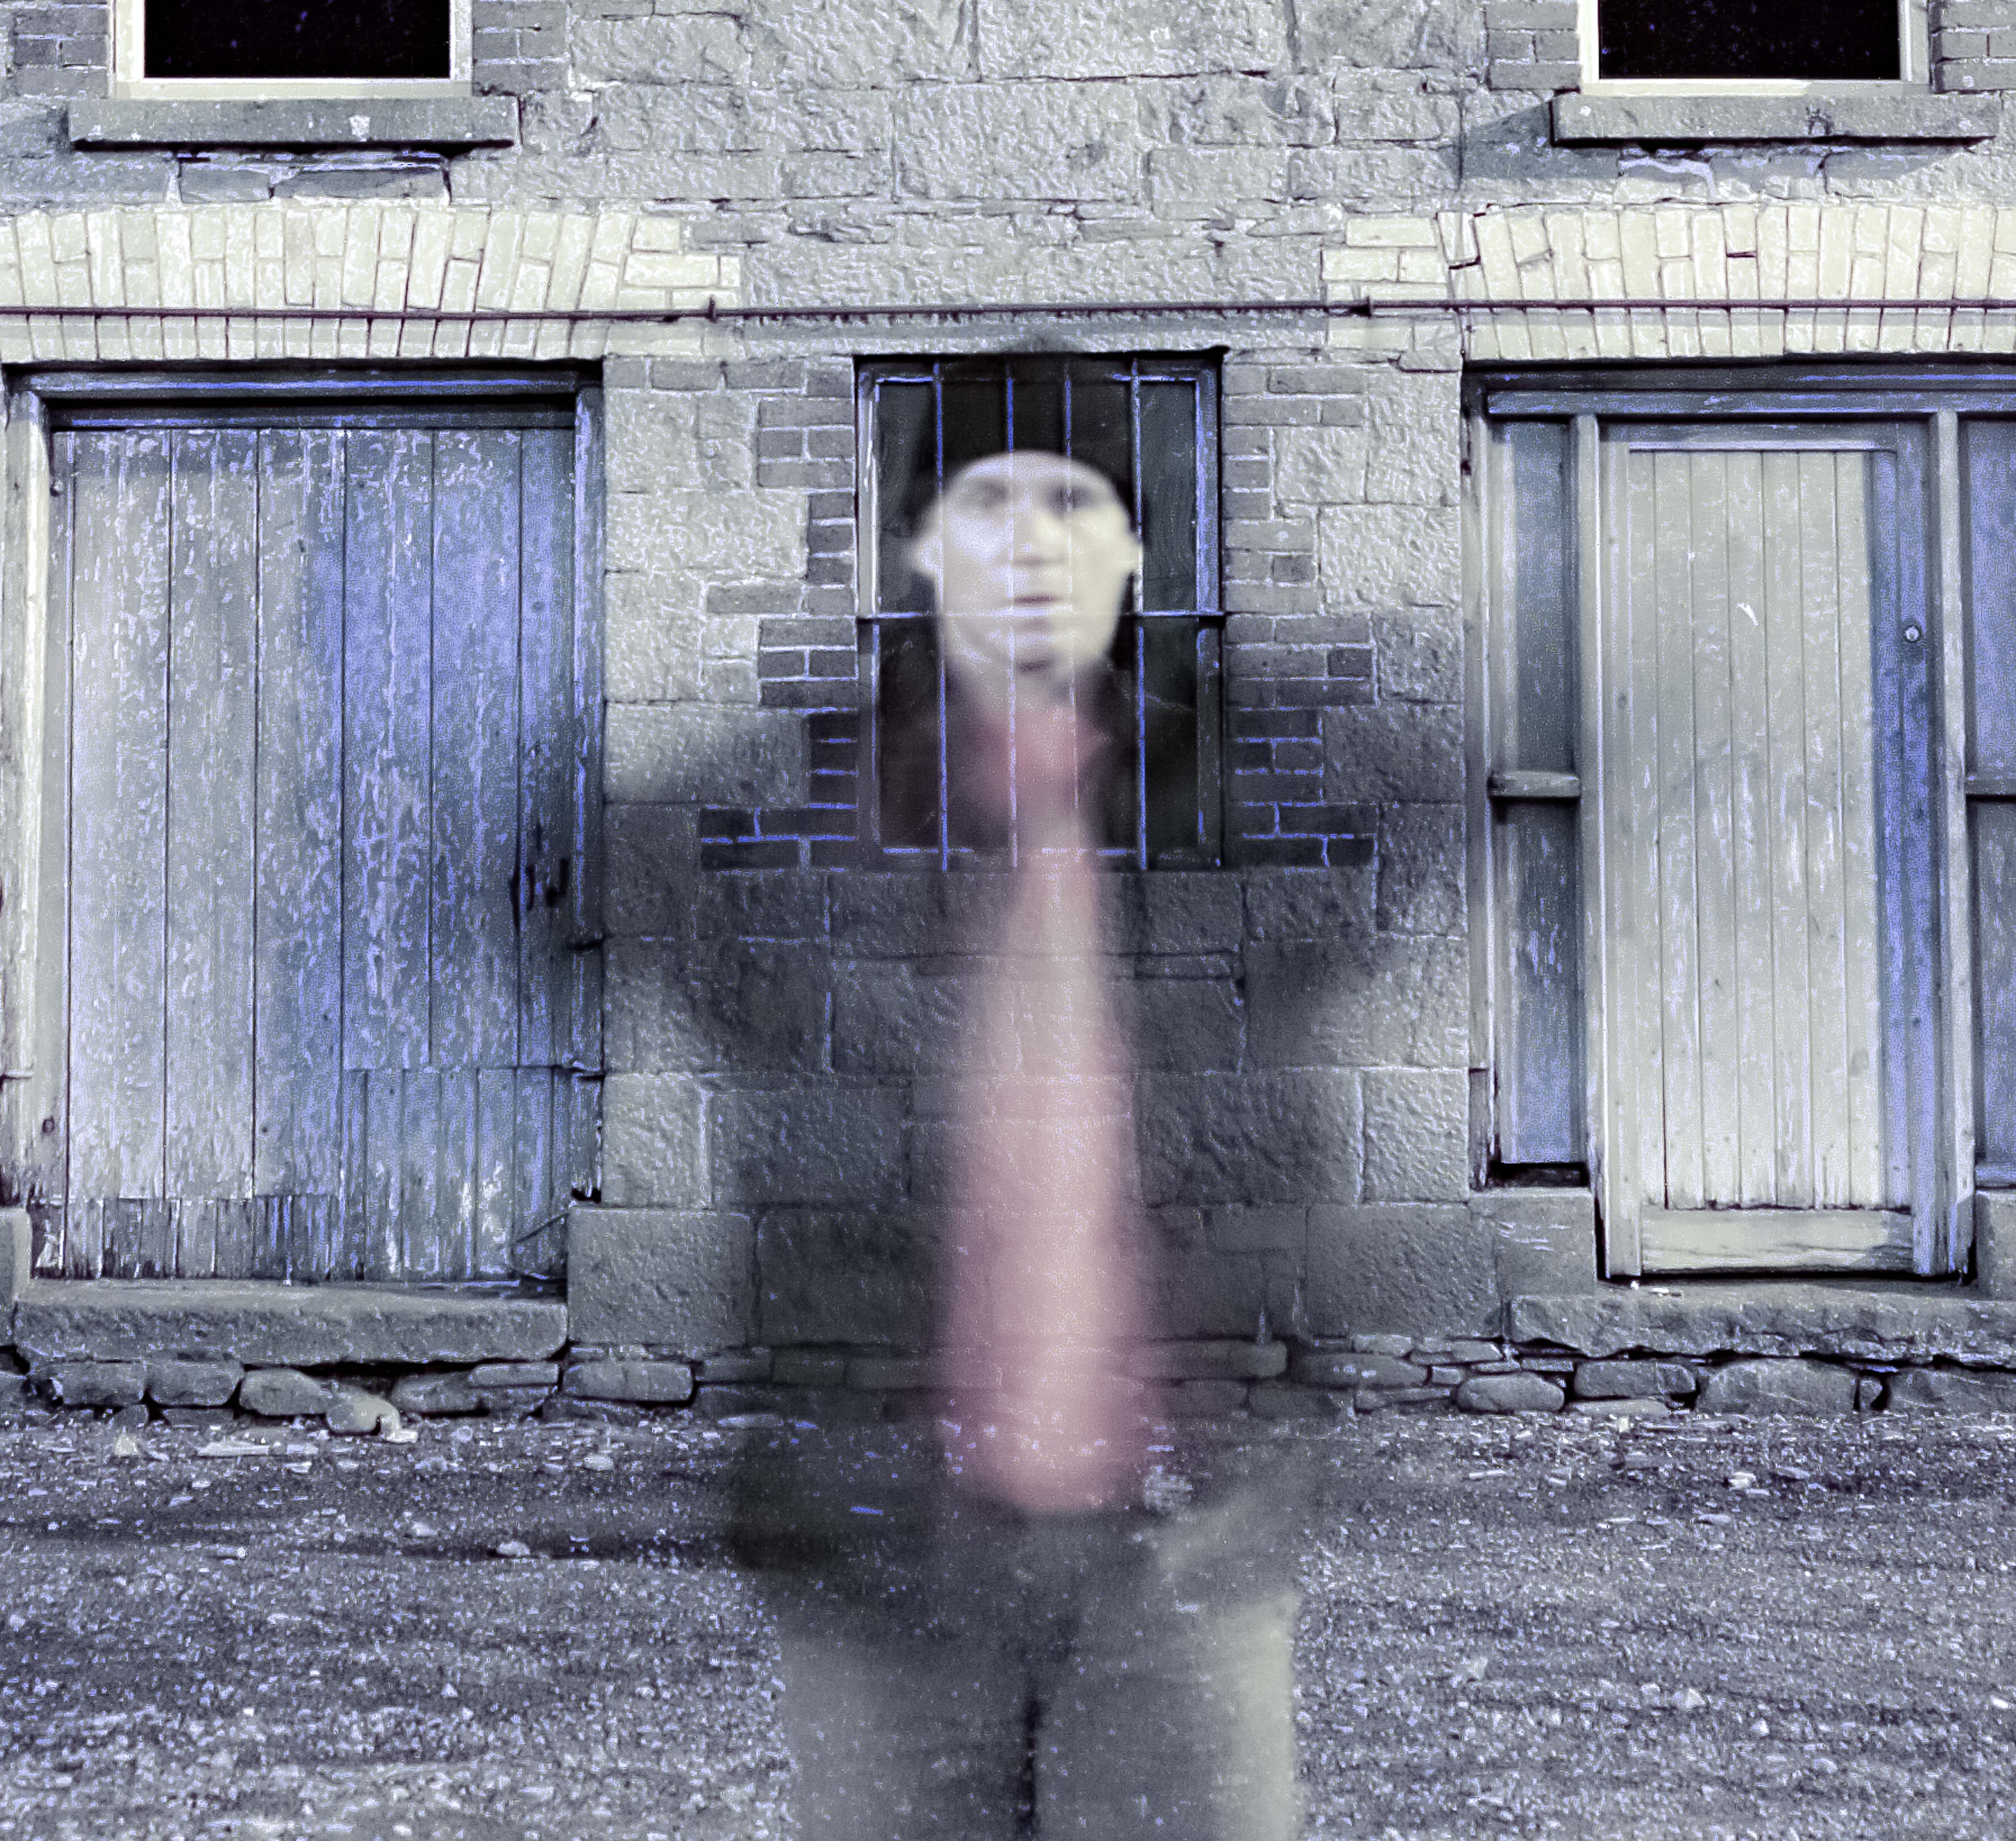 Ireland, Leitrim Province, We Are All Ghosts In Time, 2008, IMG_5528CU1